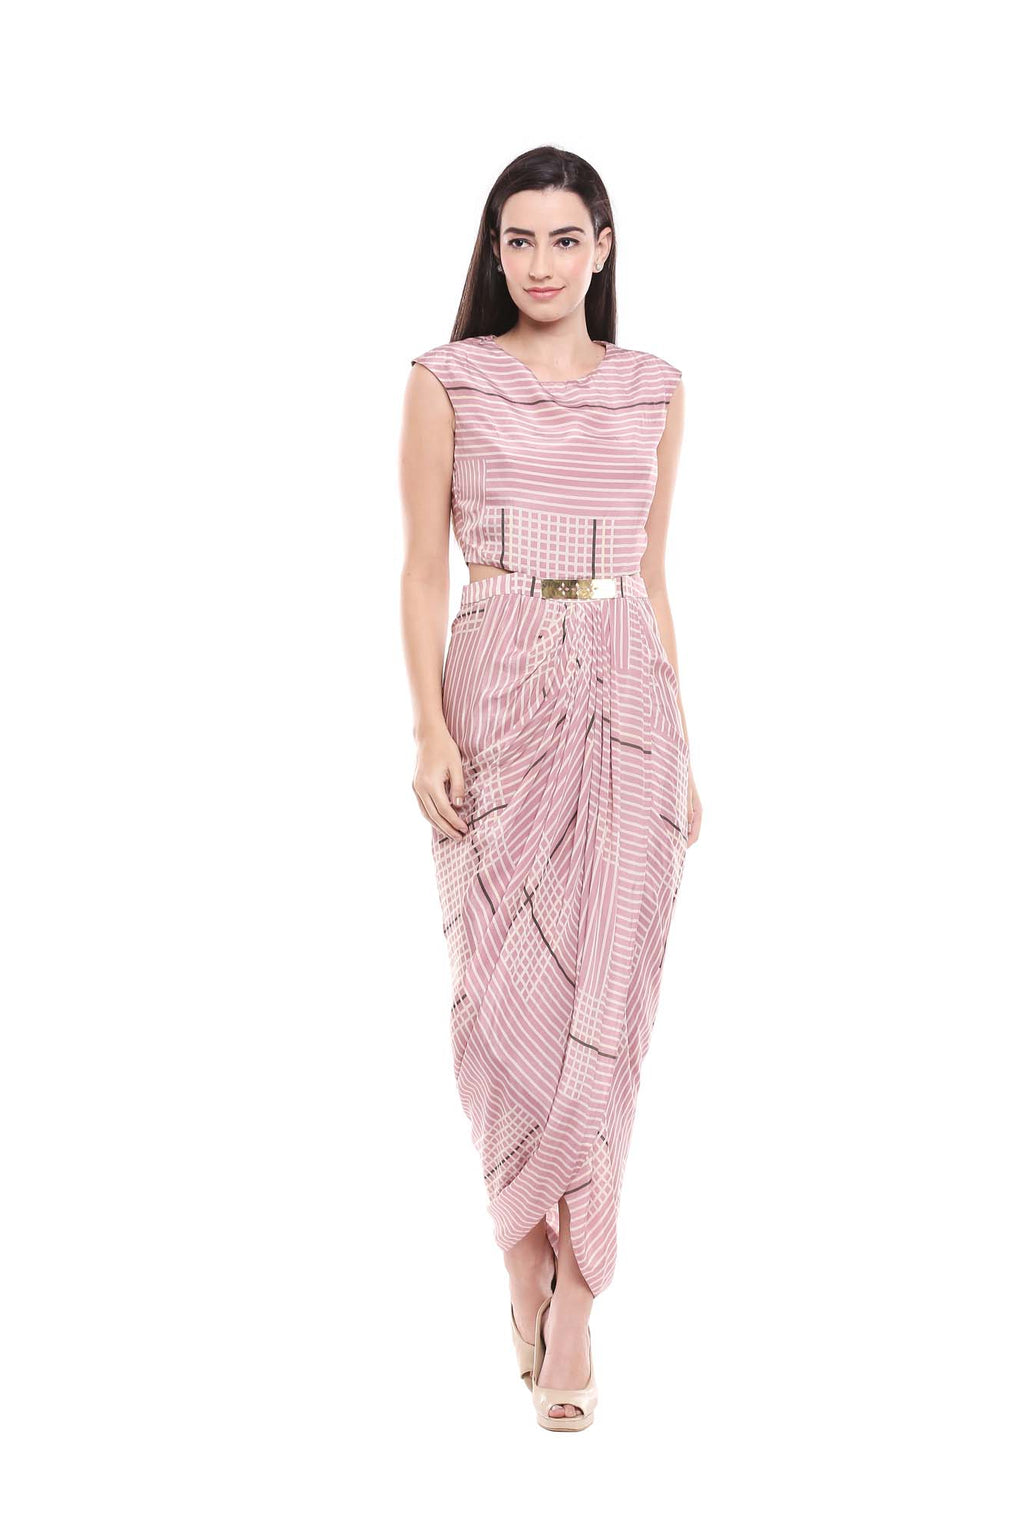 Printed Pink Drape Dress with Cape - Riviera Closet